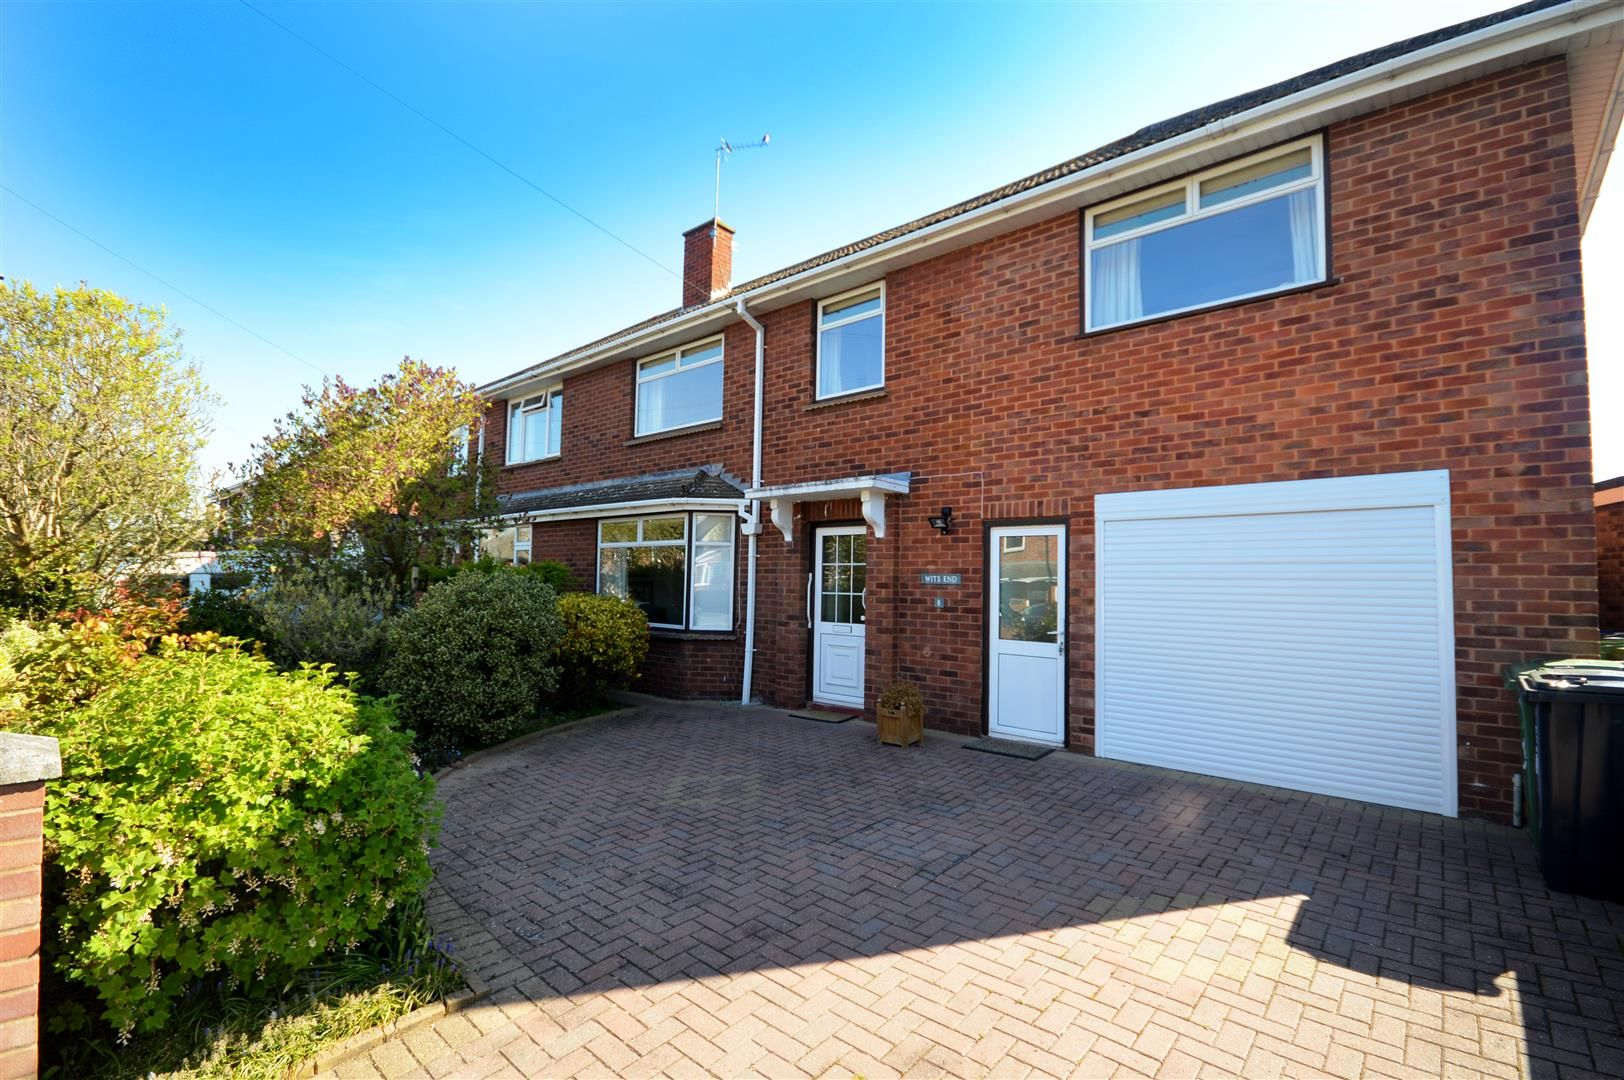 4 bed semi-detached for sale, HR1